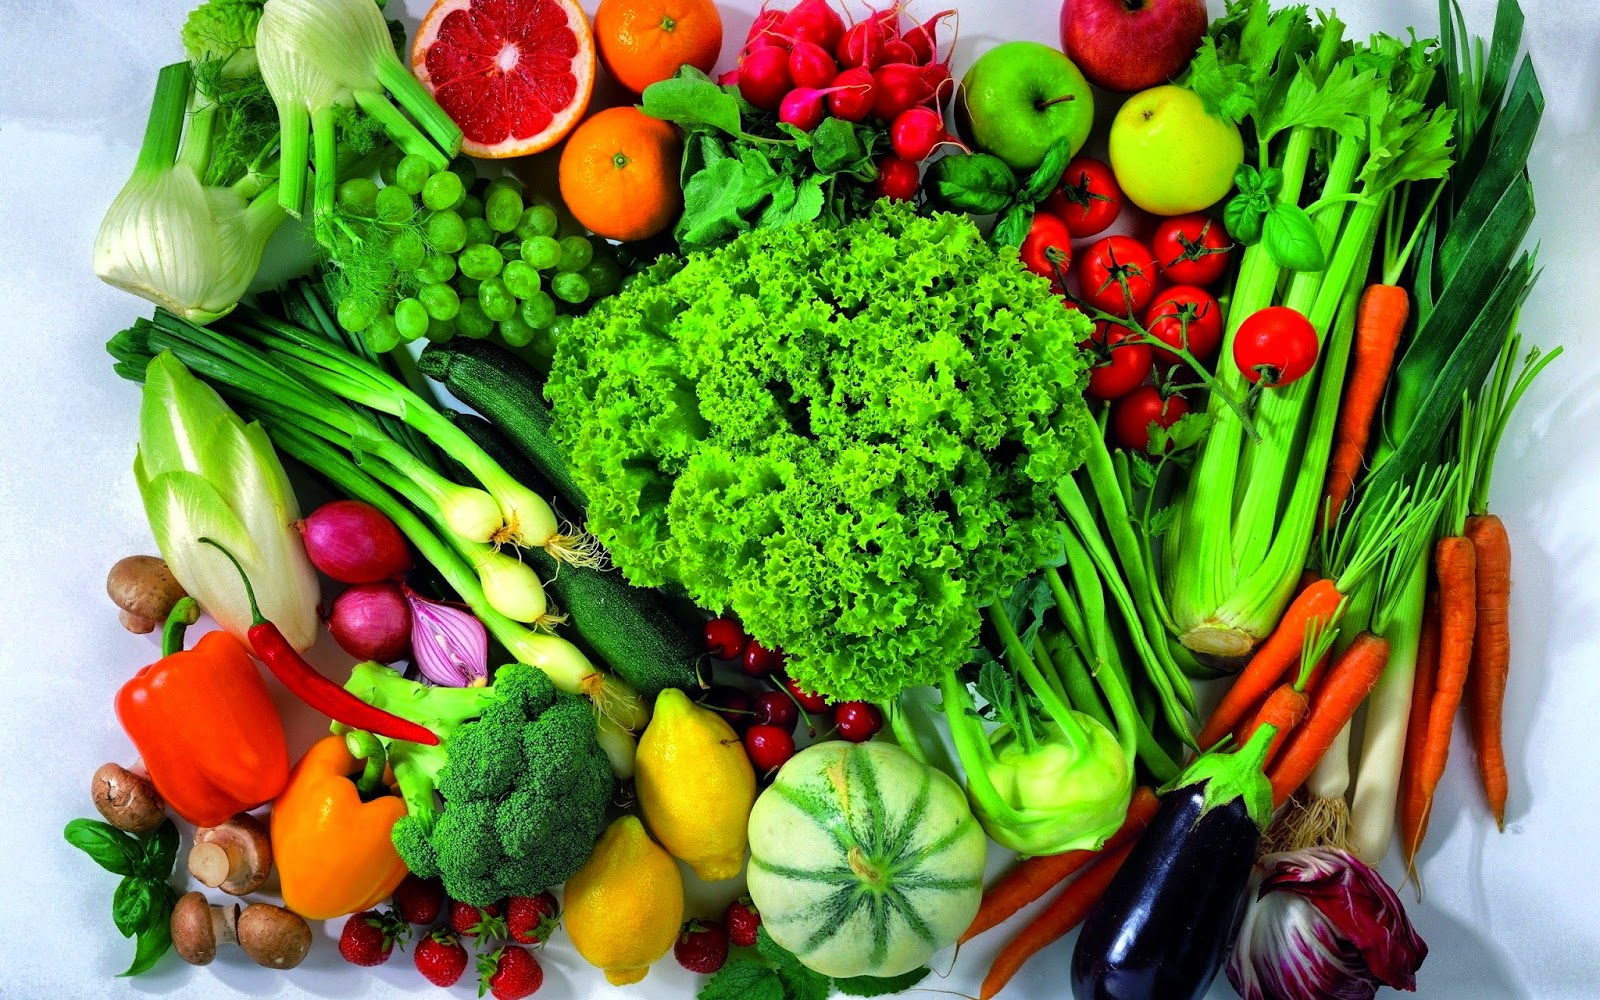 What to Eat on a Whole Foods Diet